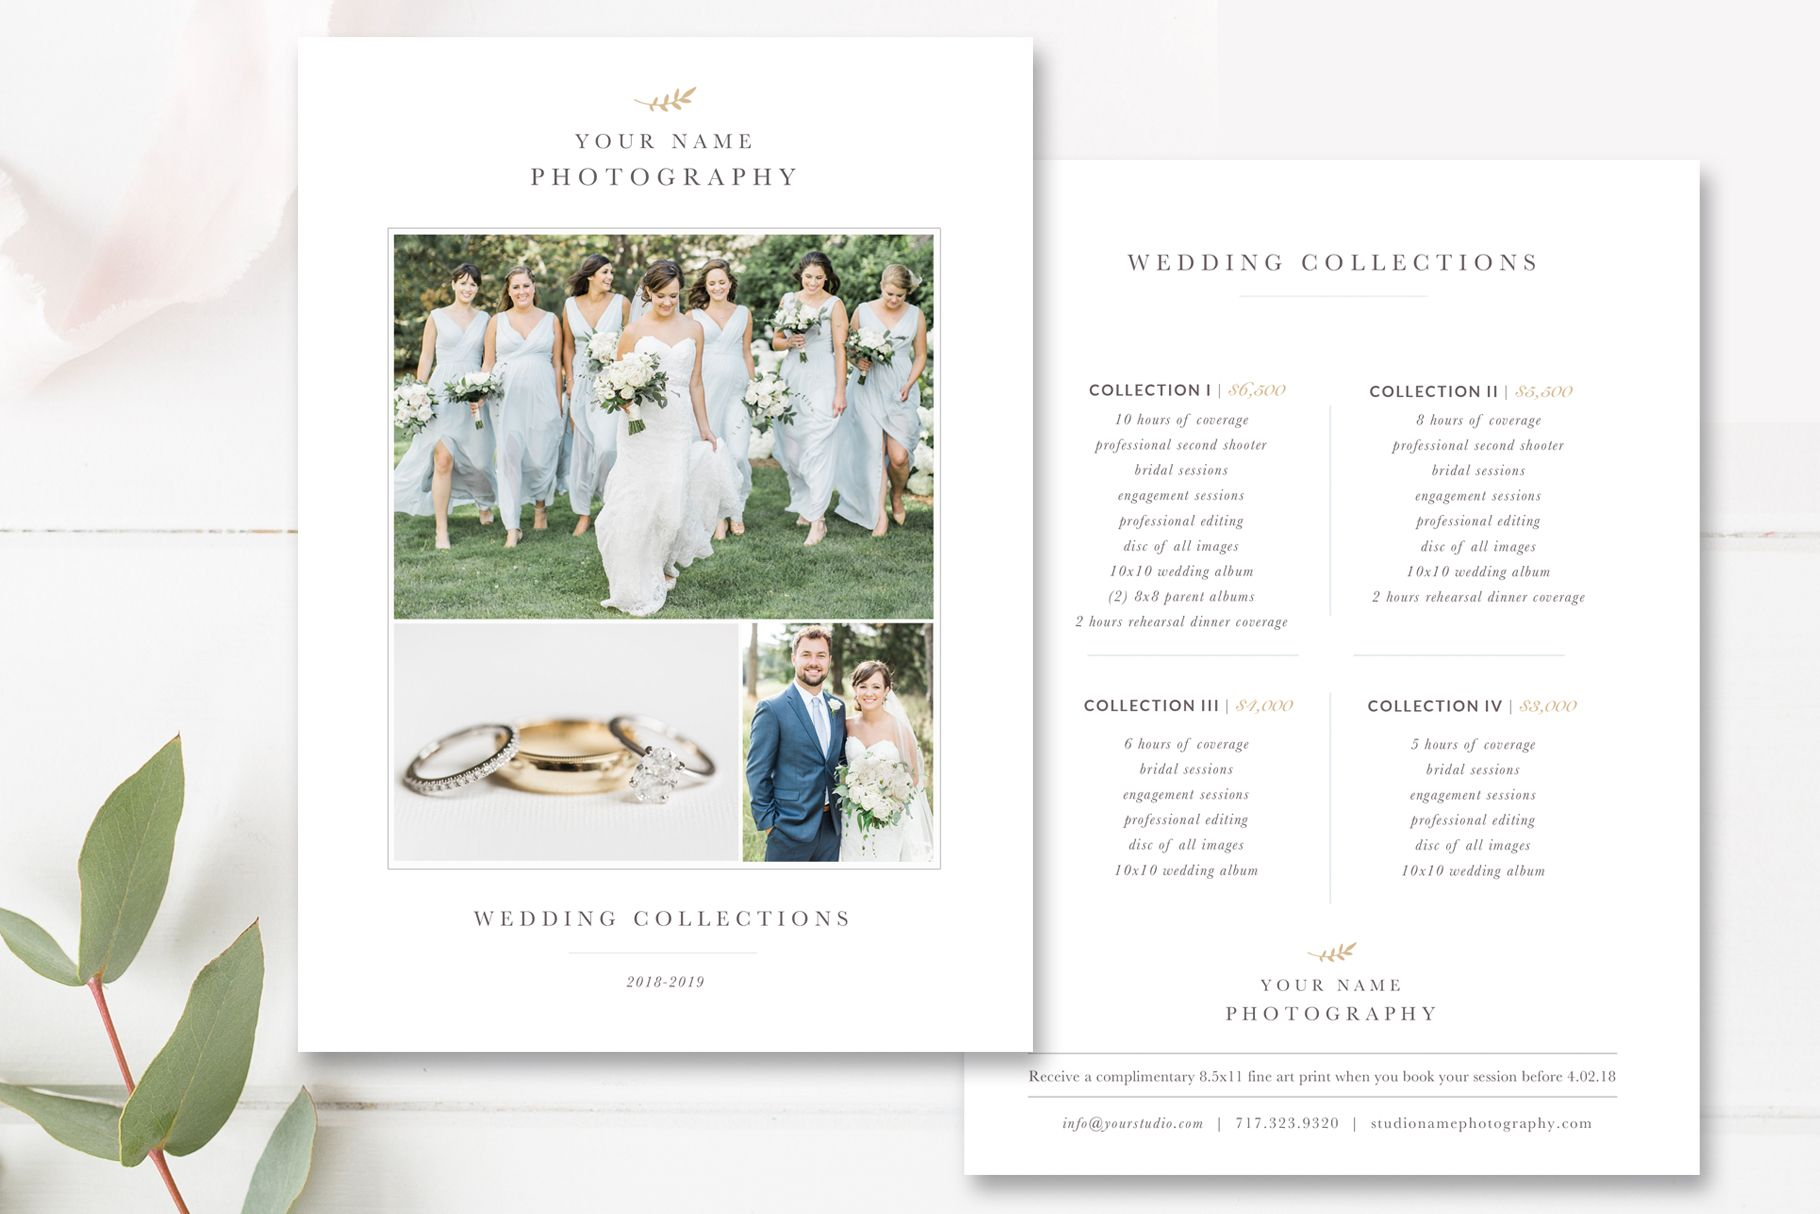 Classic Price List For Professional Wedding Photographers Photography Pricing Template Photoshop Template By Stephanie Design Clip Art Food Design